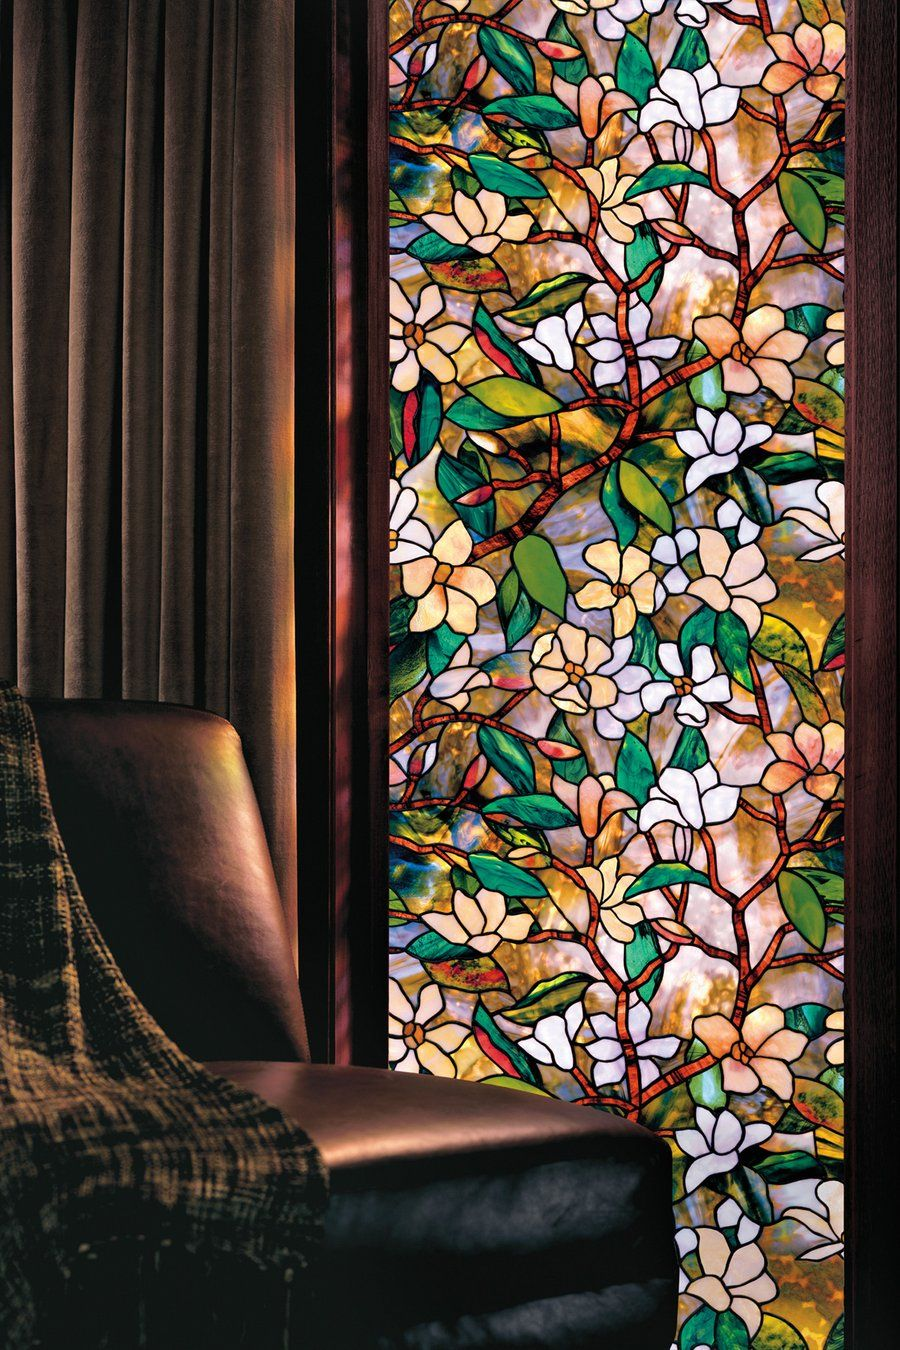 Faux Stained Glass Window Film.Magnolia In 2019 Stained Glass Window Film Faux Stained